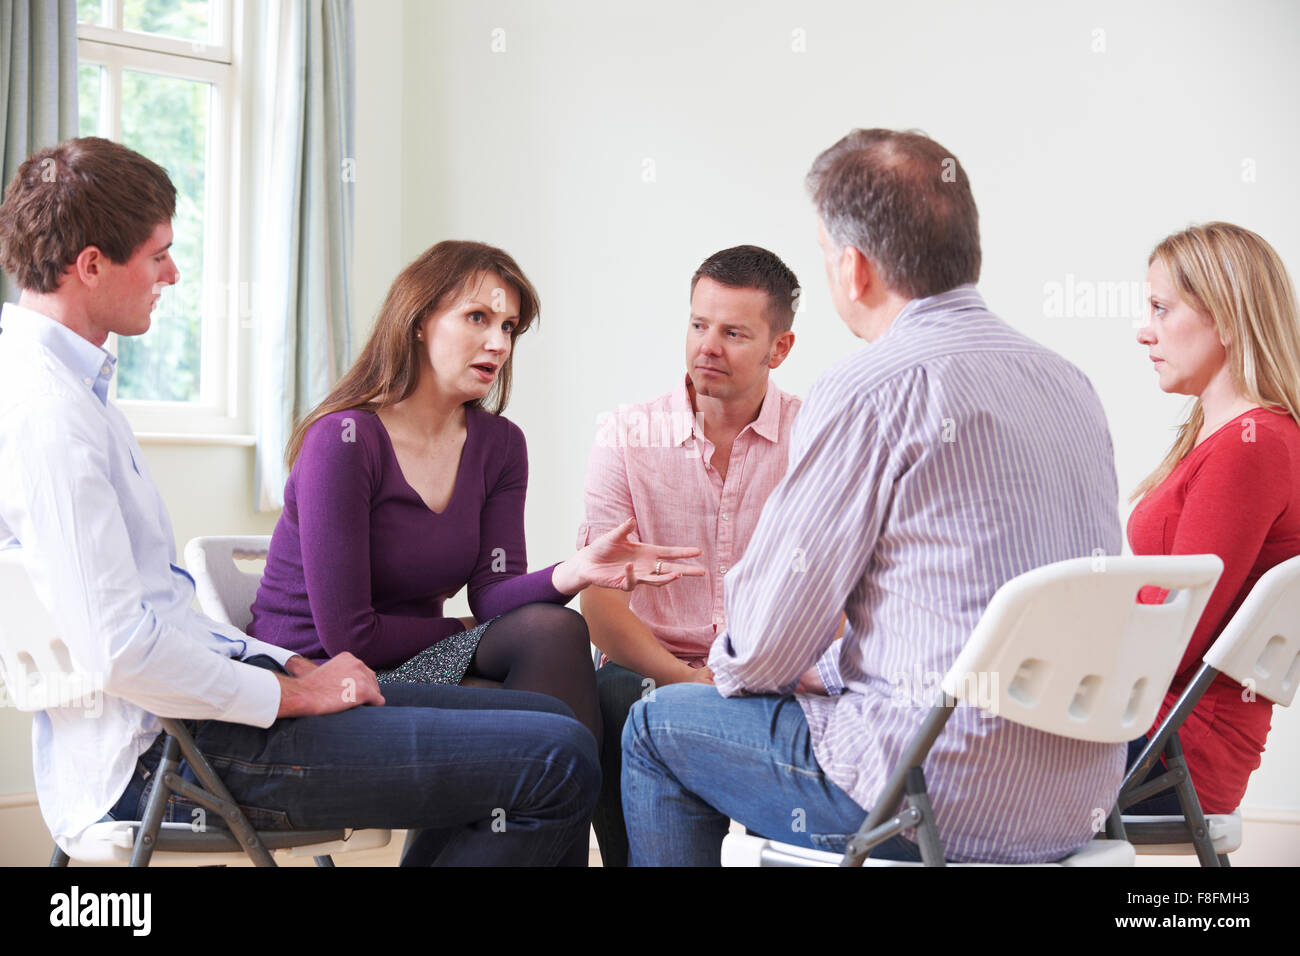 Meeting Of Support Group - Stock Image